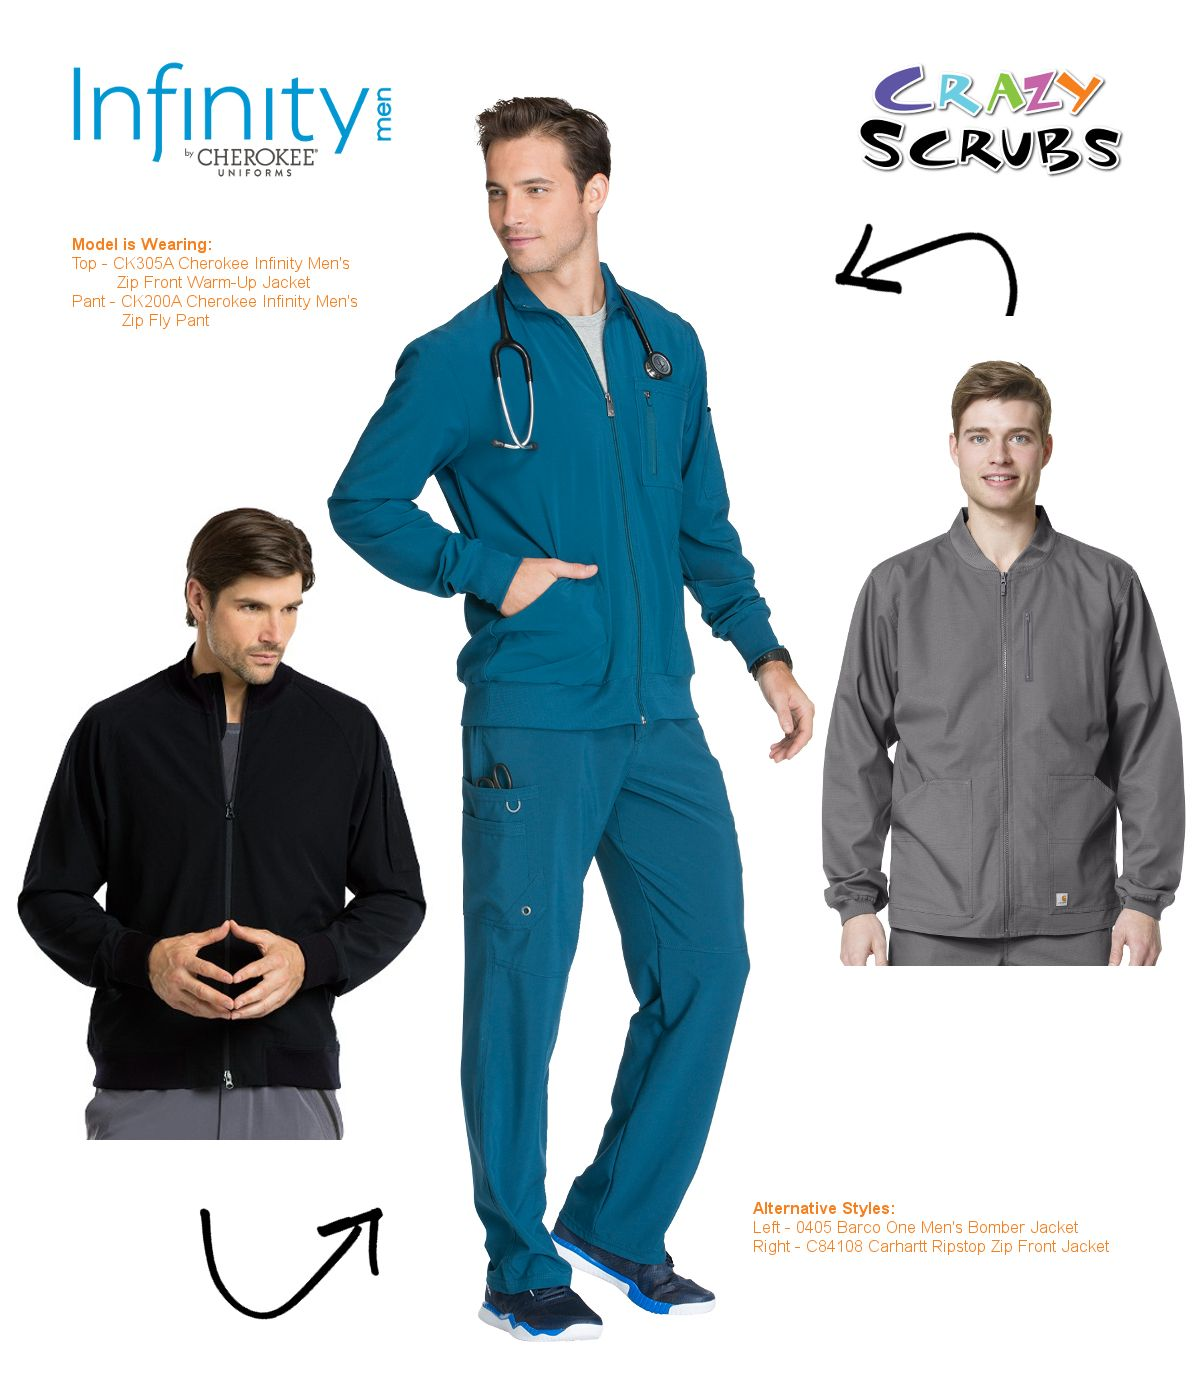 eea4b8ca0e9 Today's Outfit of the Day features Cherokee Infinity Scrubs! #OOTD #Fashion  #InfiniteMovement